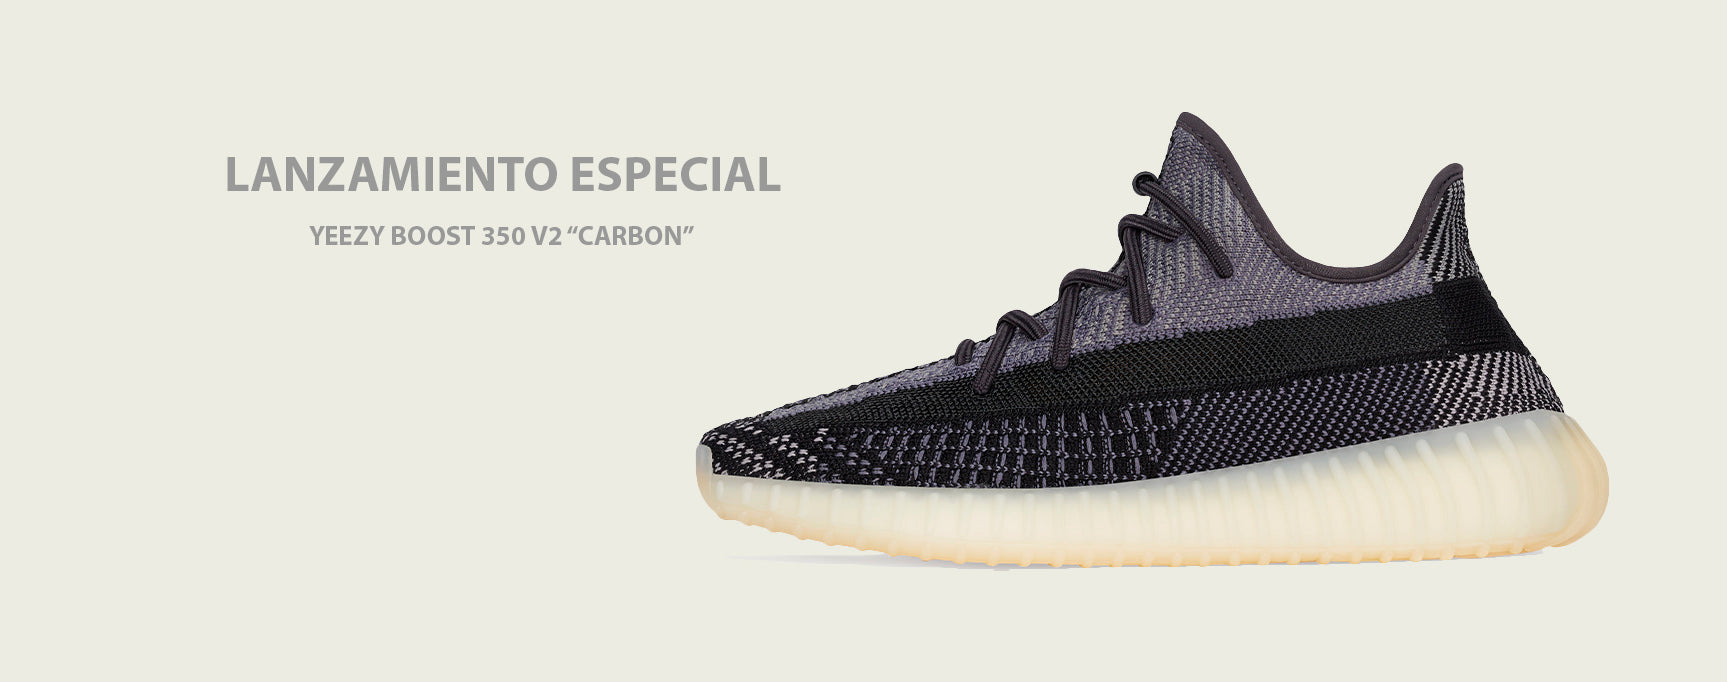 HYPE_ADIDAS_YEEZY_BOOST_350_V2_CARBON_1